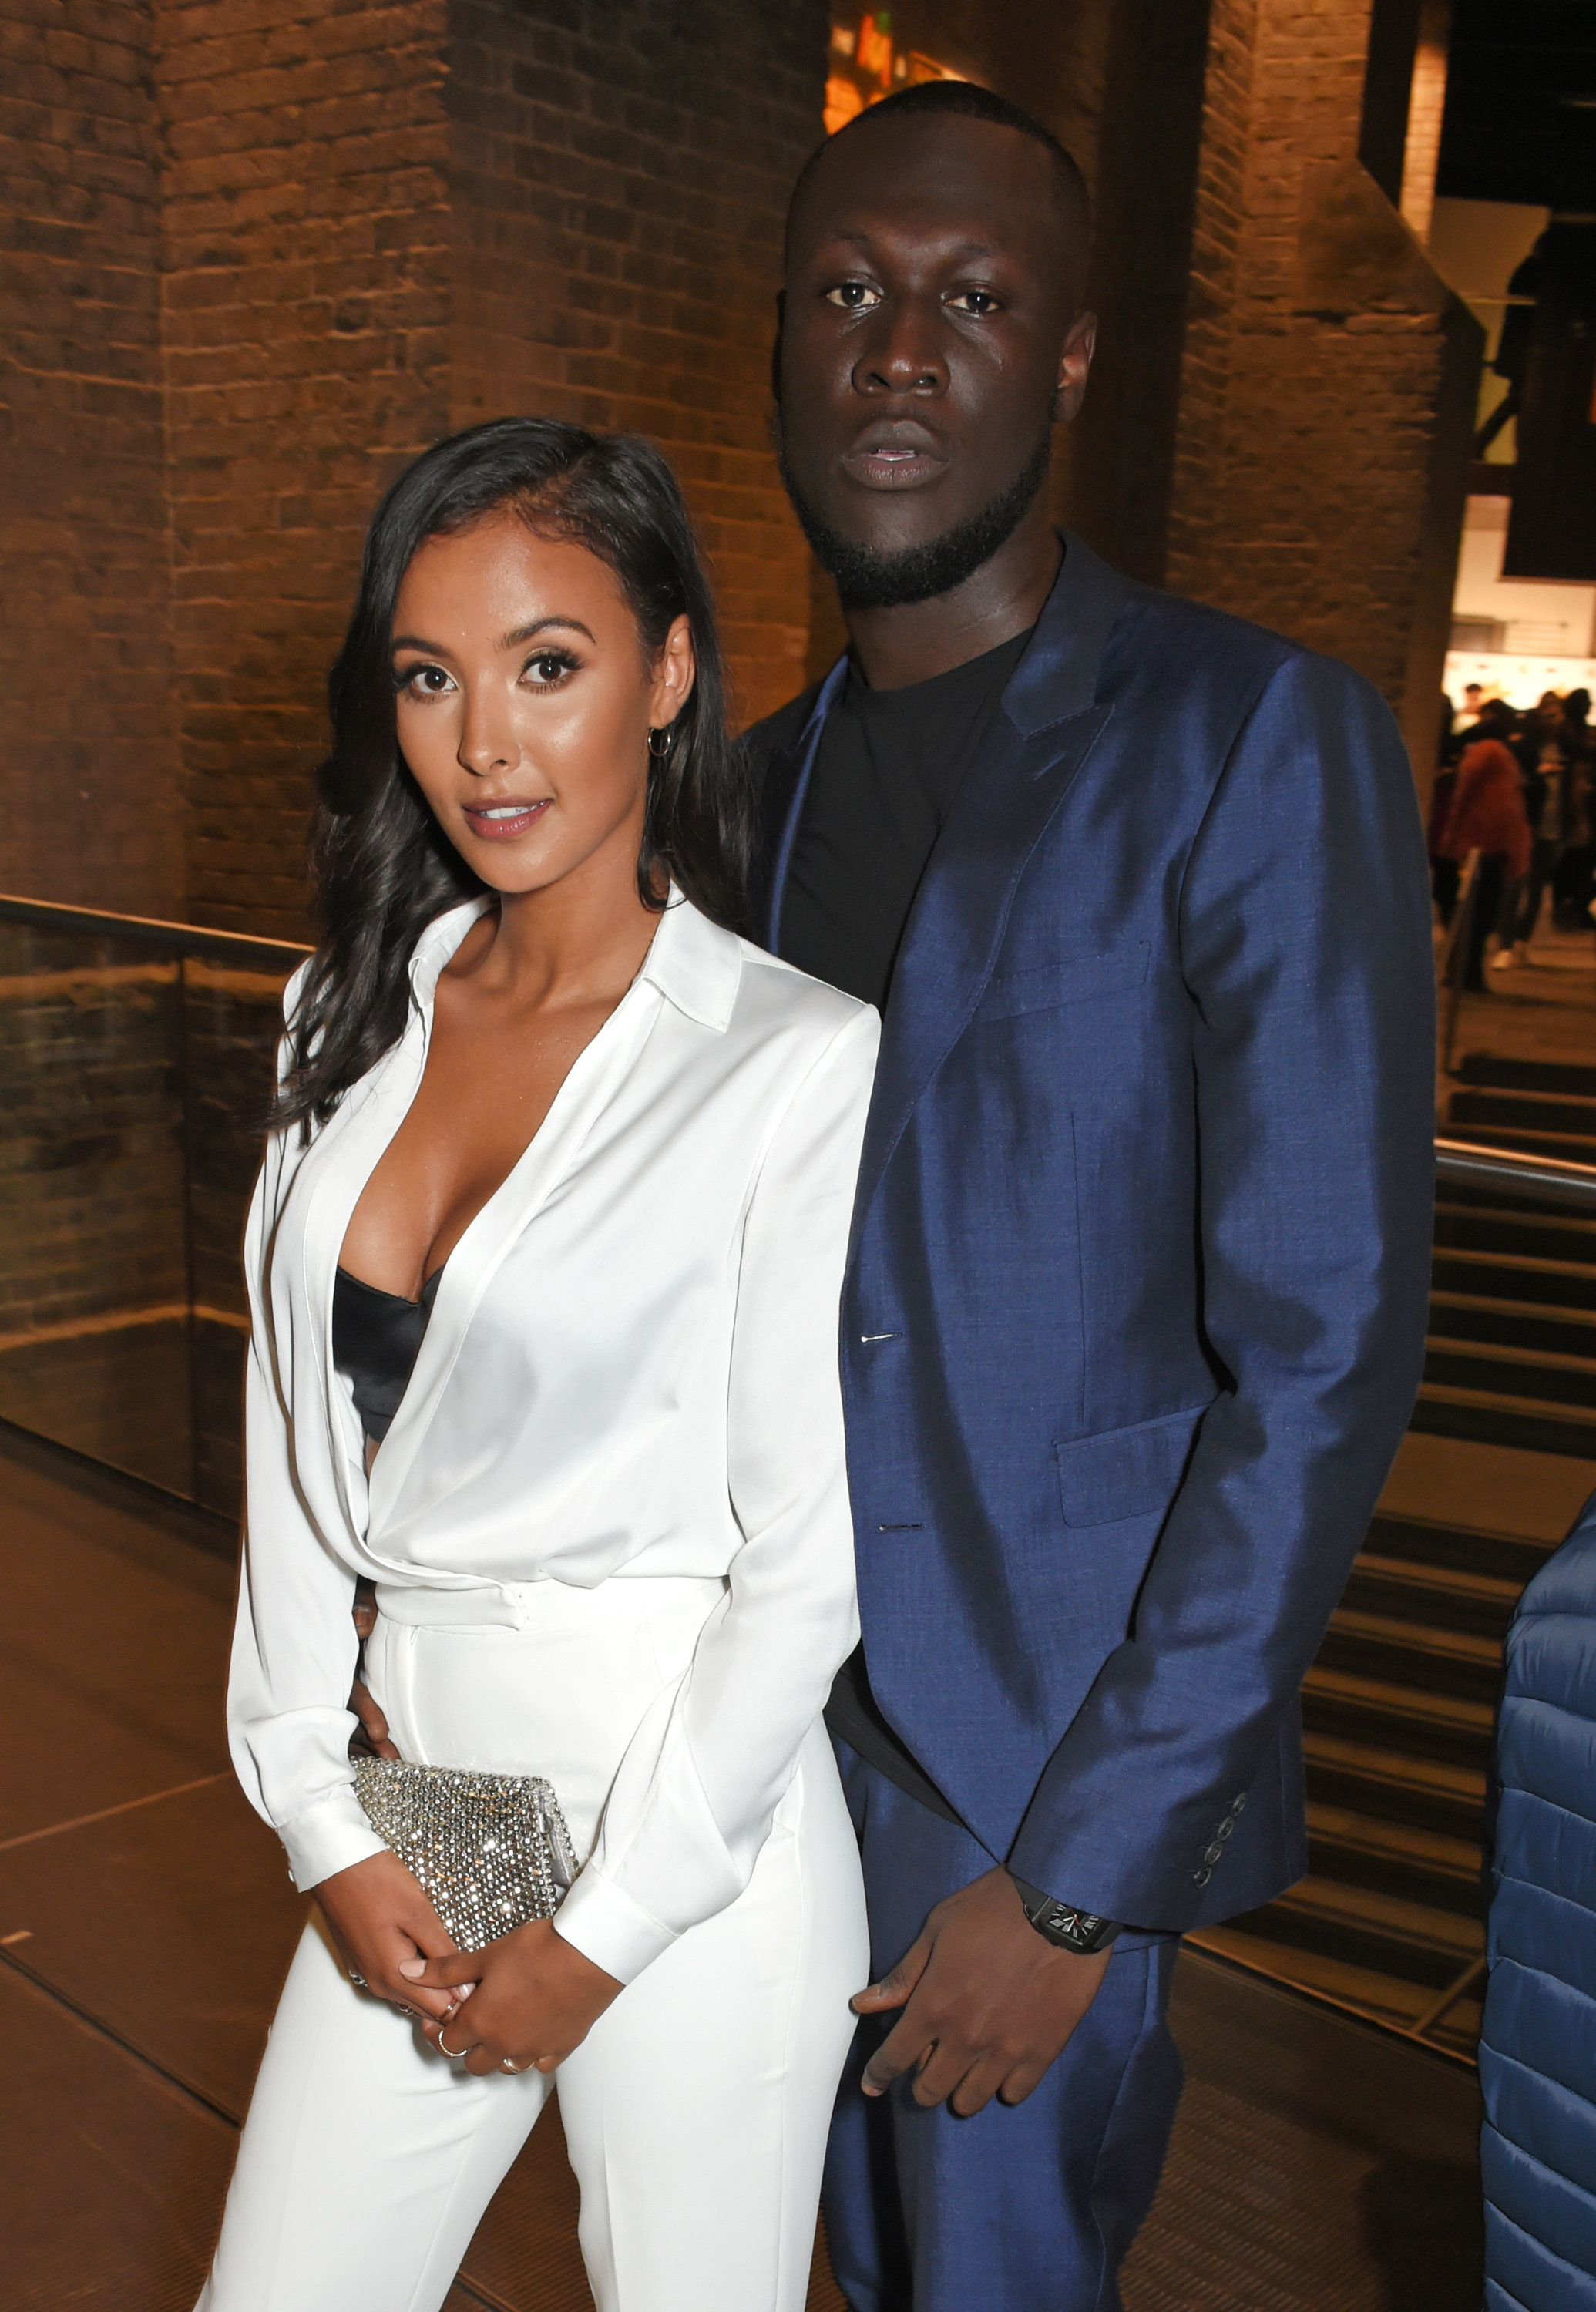 Stormzy Speaks Out On Maya Jama Race Controversy, Agreeing Her Comments Were 'An Insult'